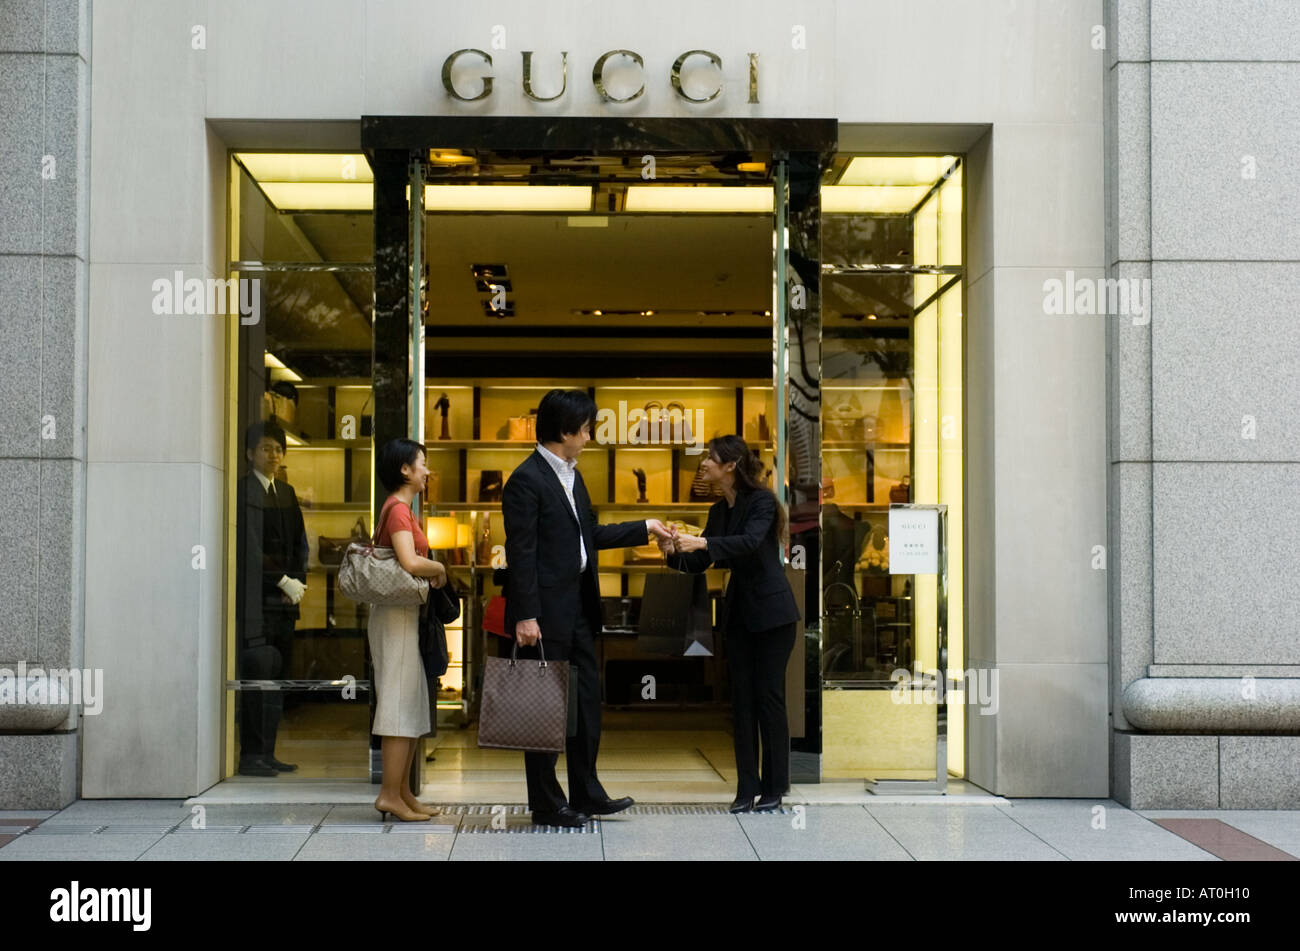 Customers leaving Gucci store in Omotesando Tokyo Japan Stock Photo: 5275919 - Alamy